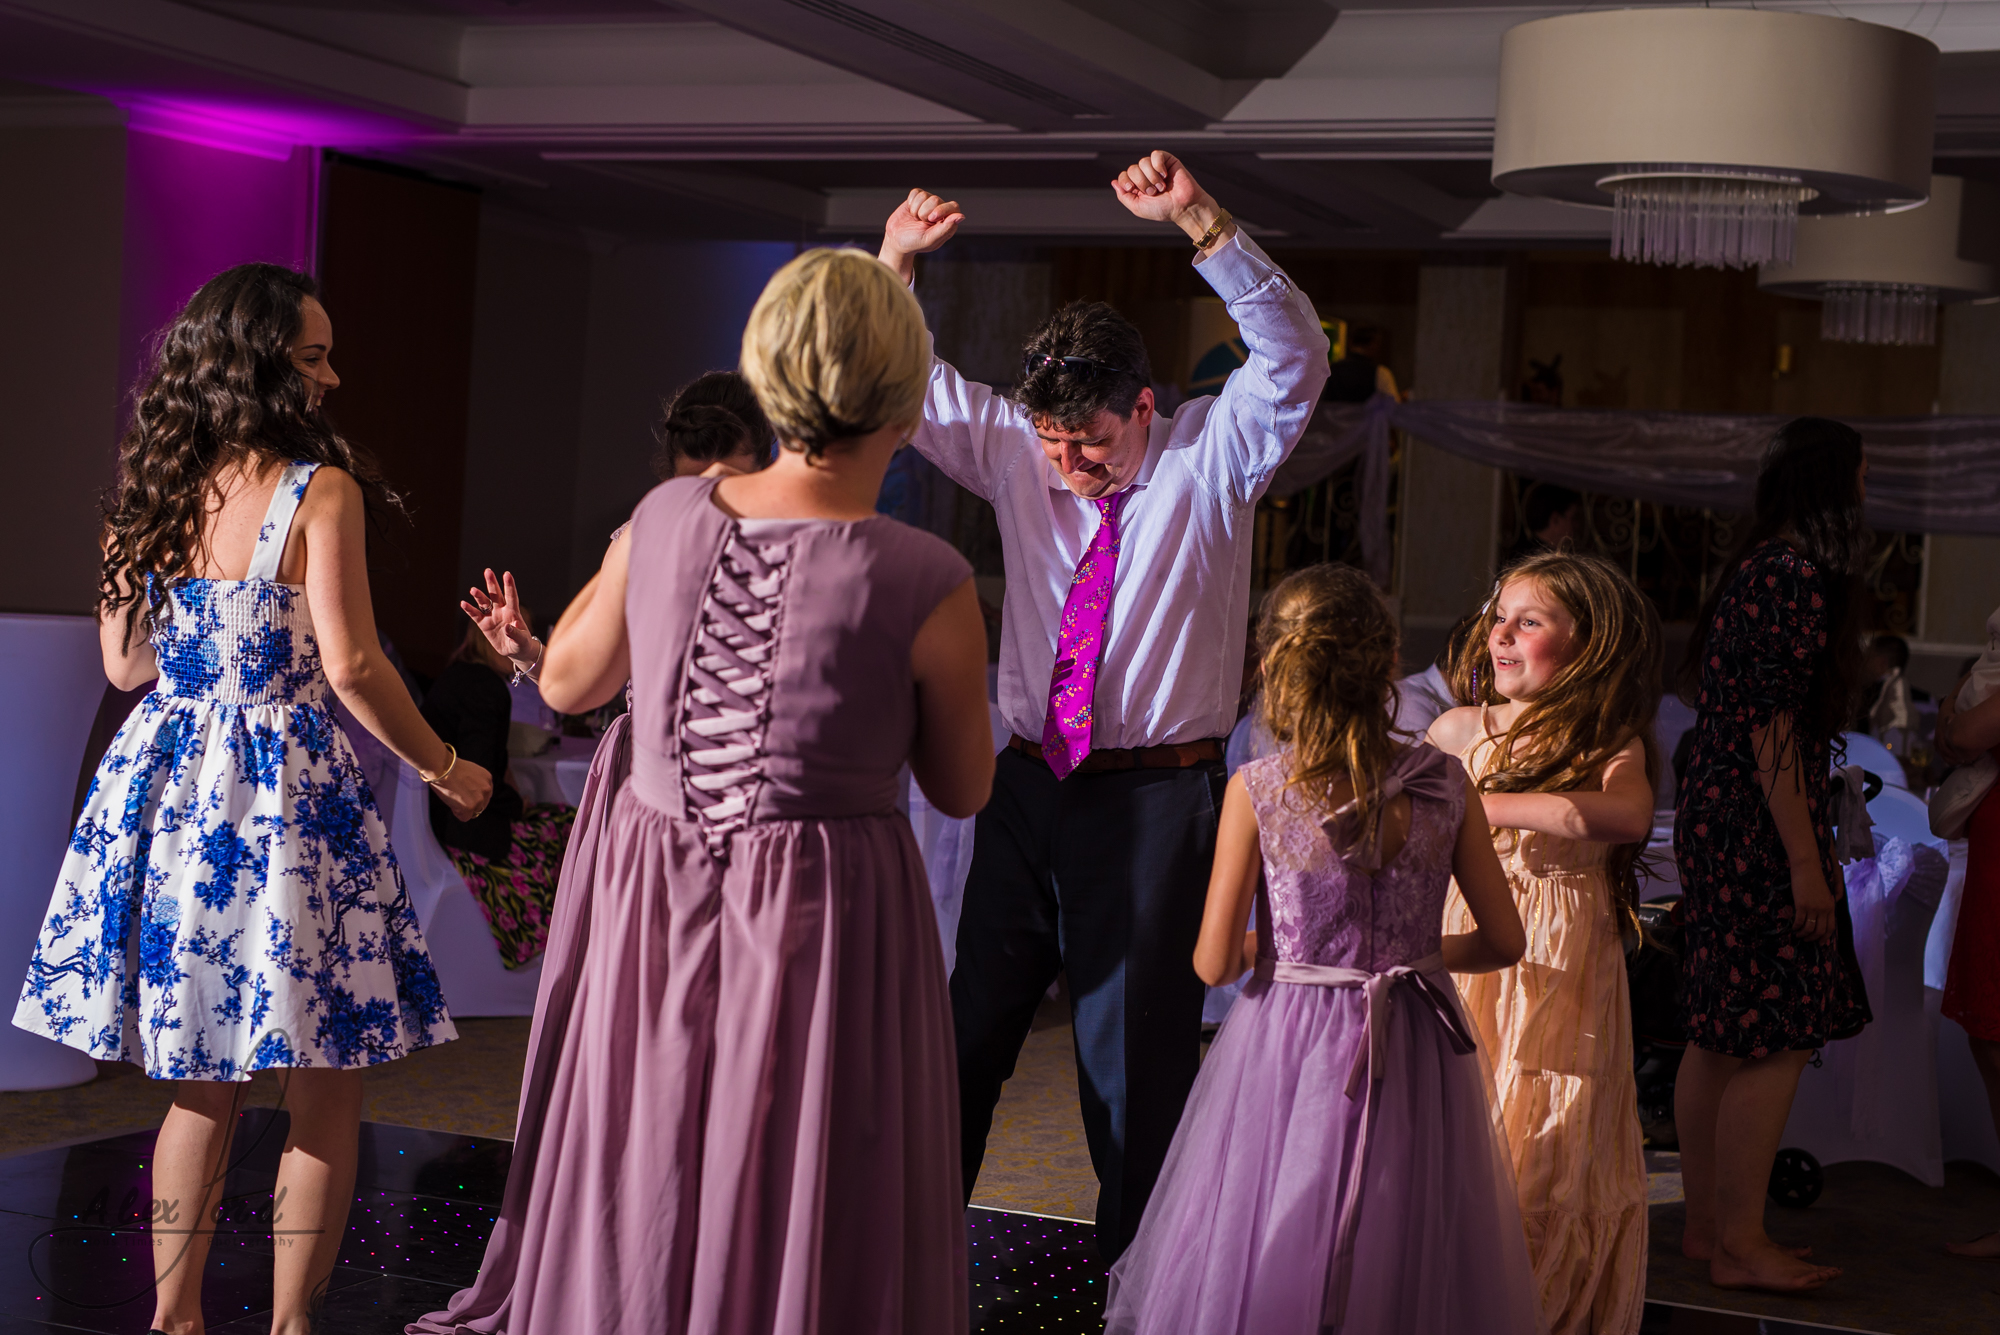 wedding guests dance their legs off on the dance floor before the bride and bride have their first dance